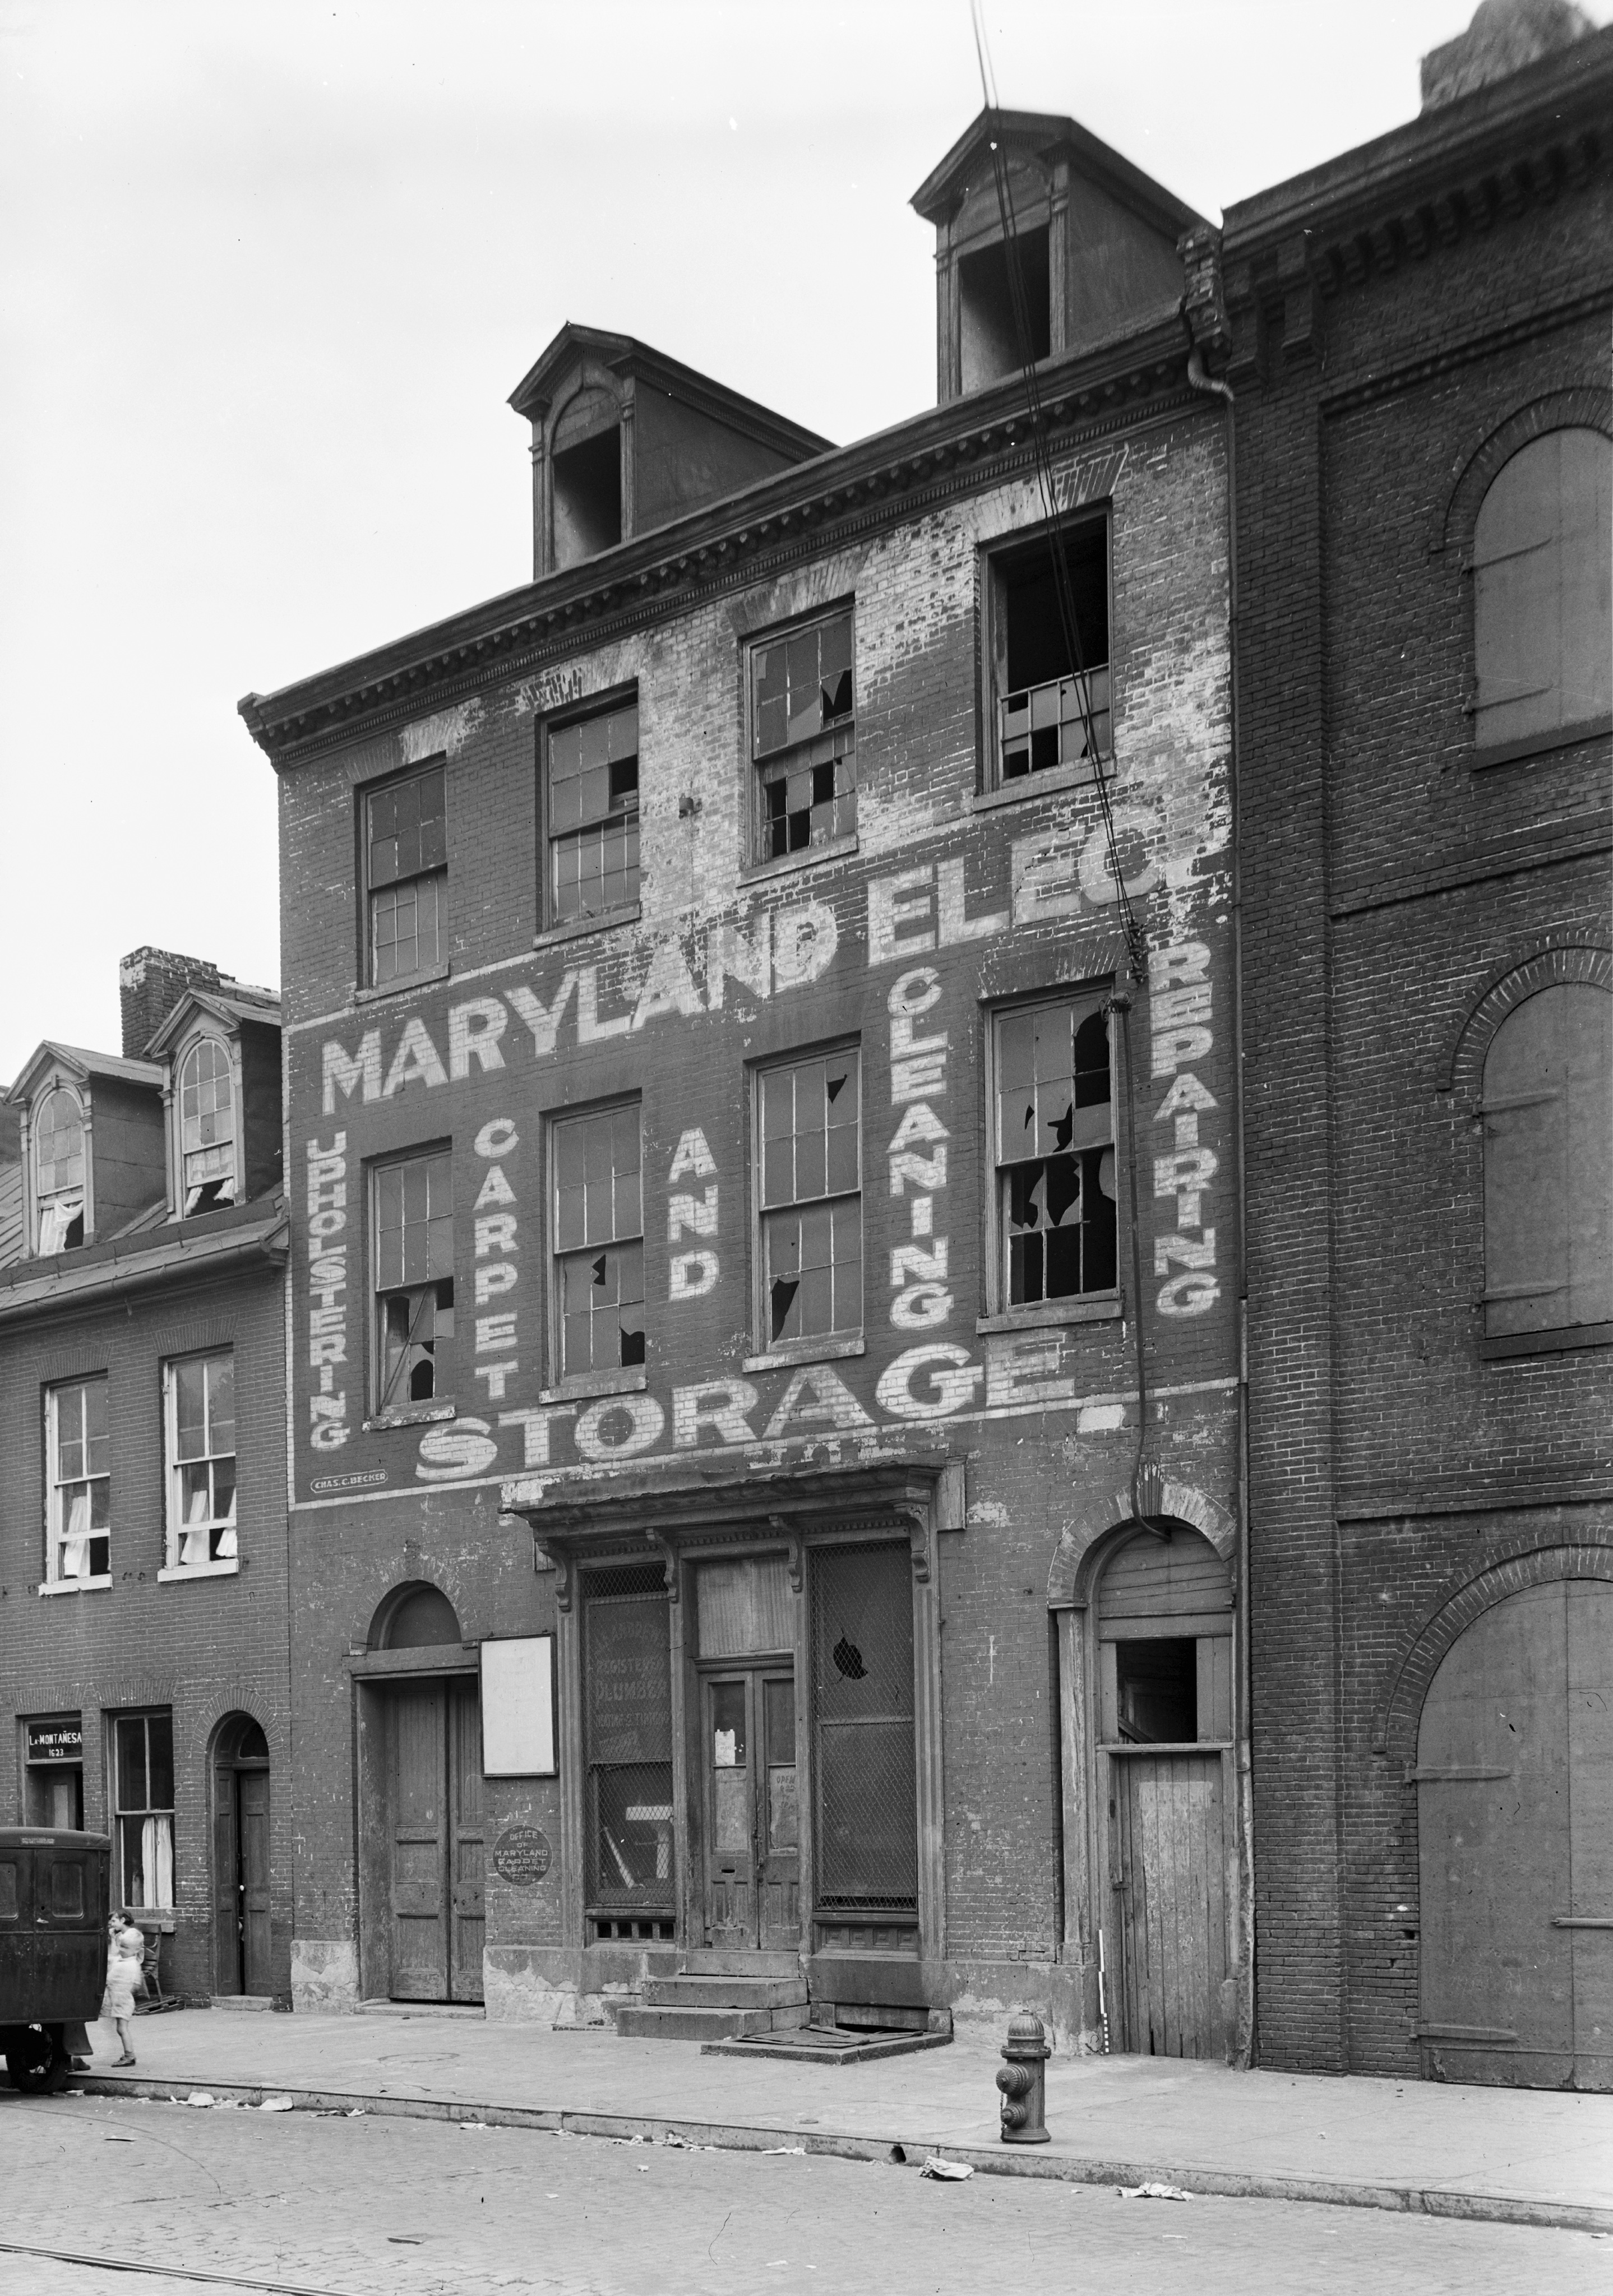 Photo of 1621 Thames Street in 1936